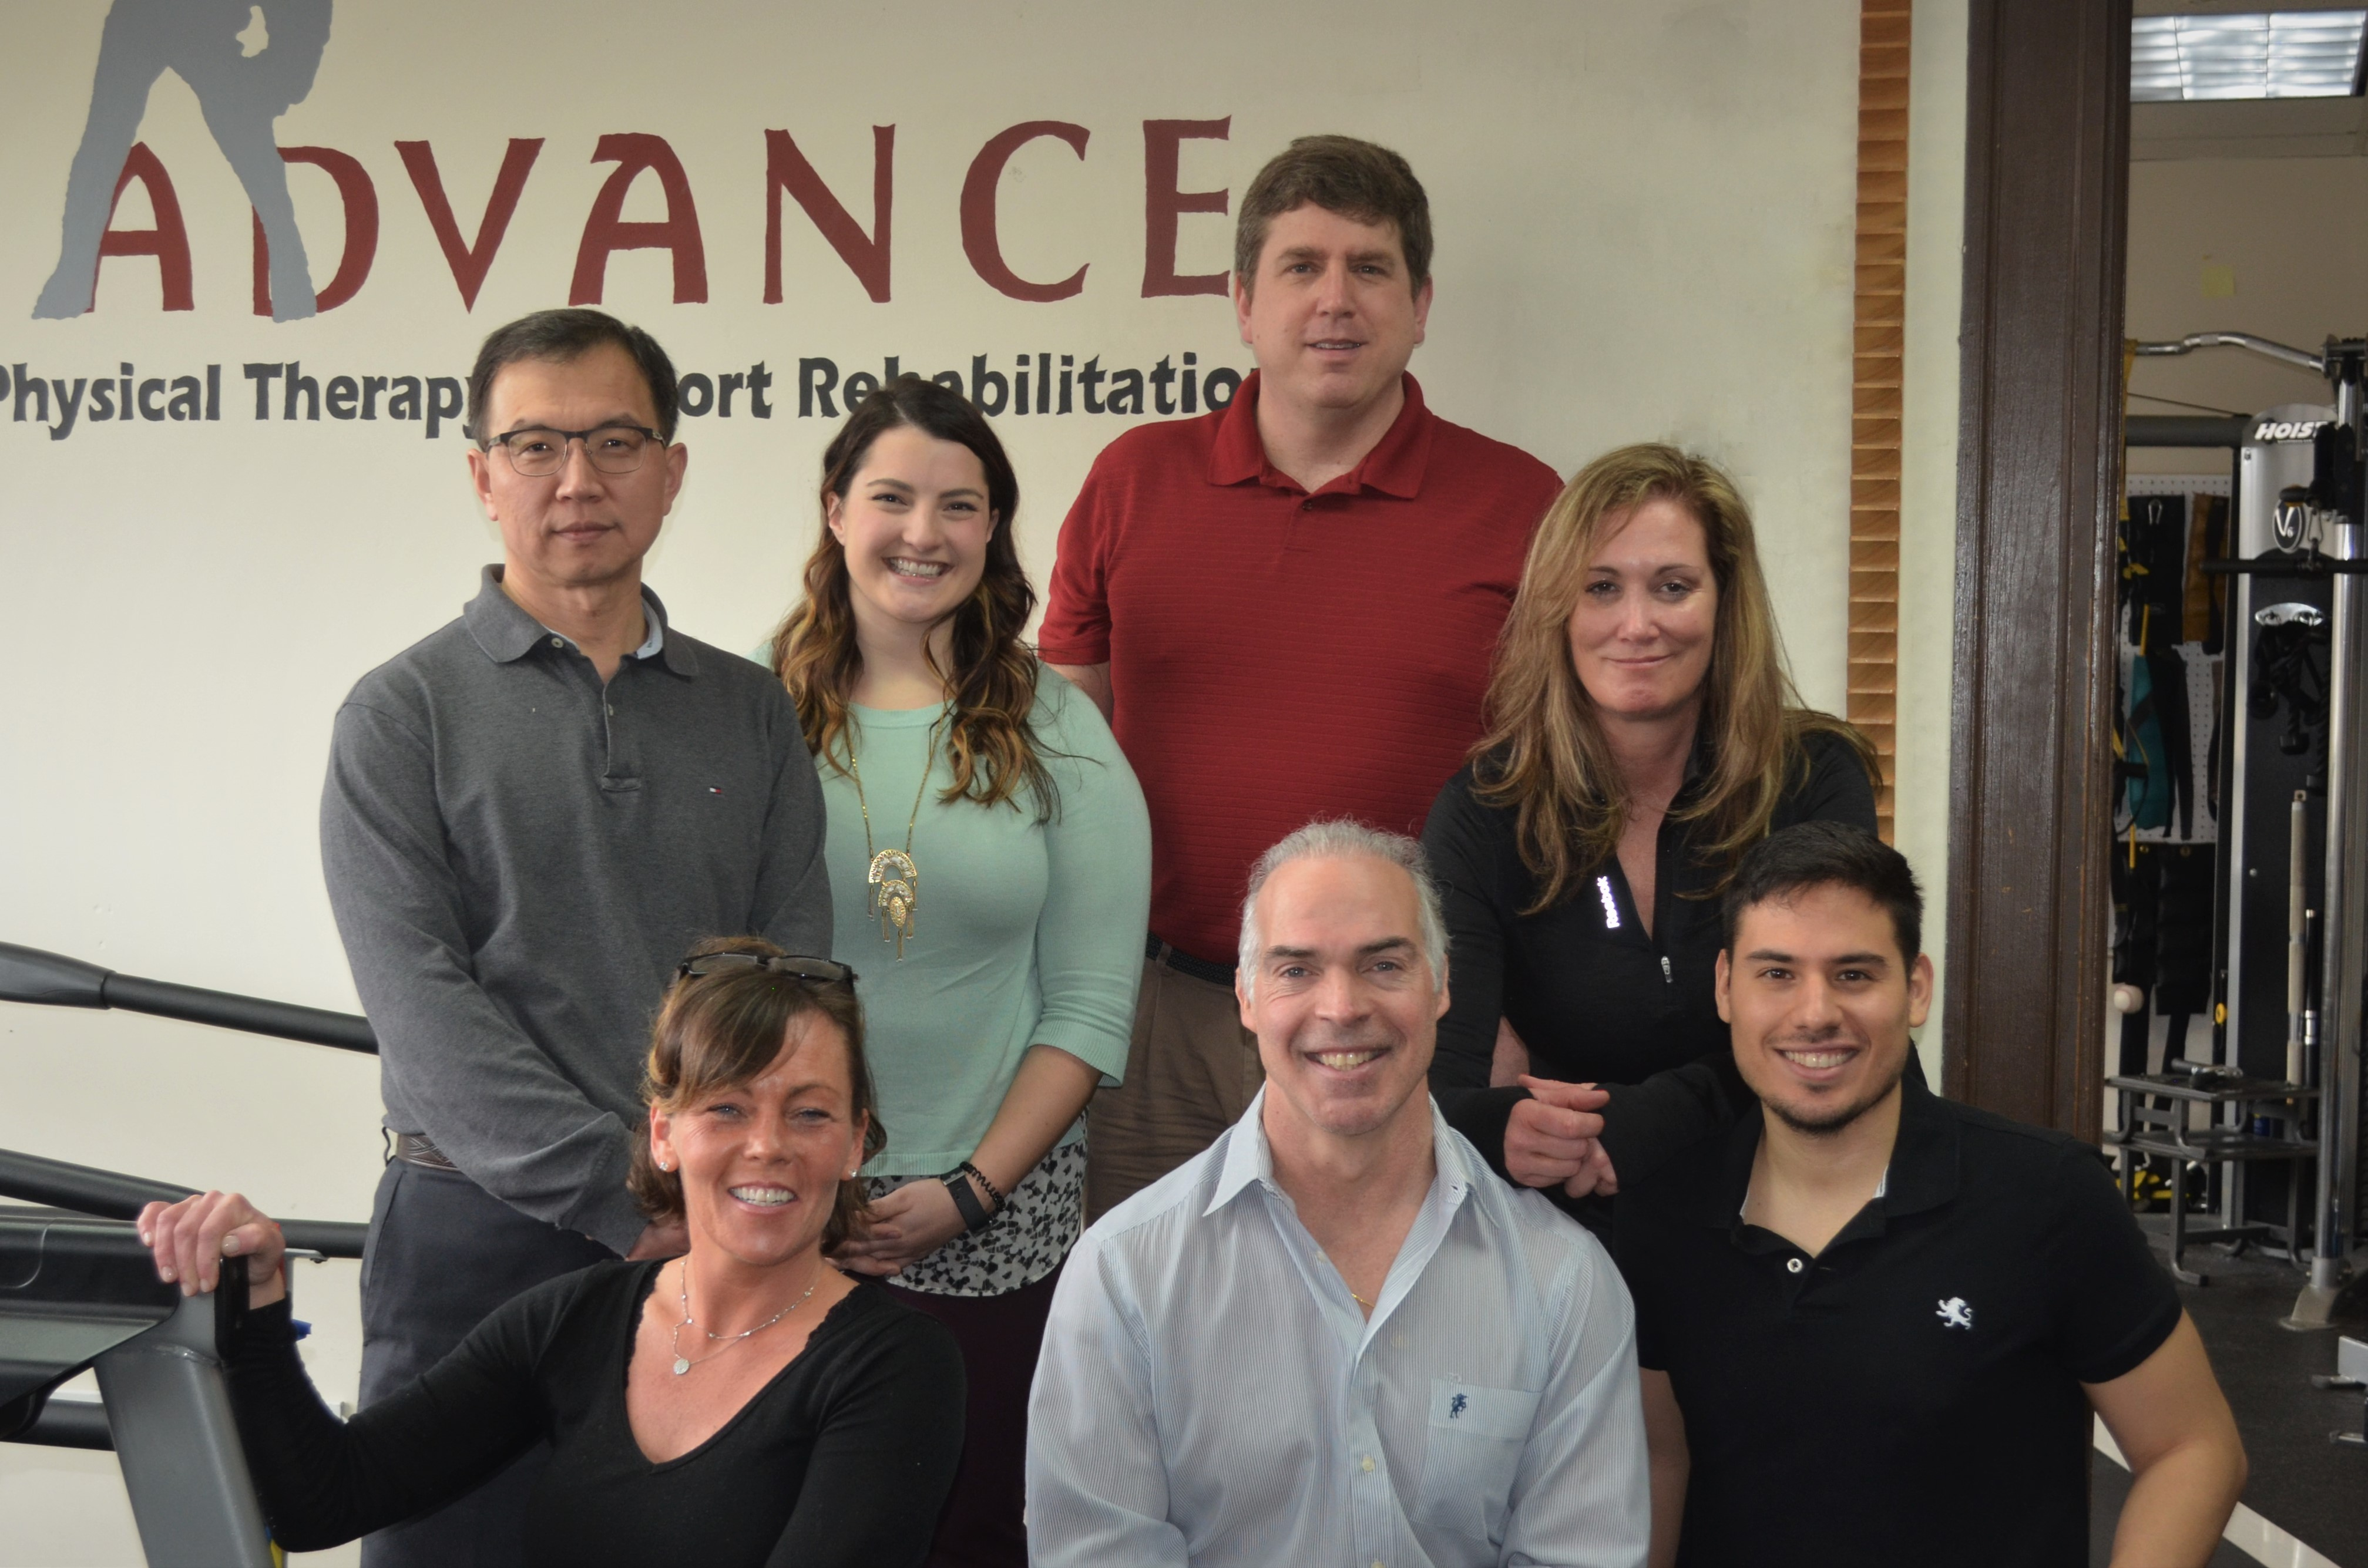 Advance Physical Therapy & Sport Rehabilitation